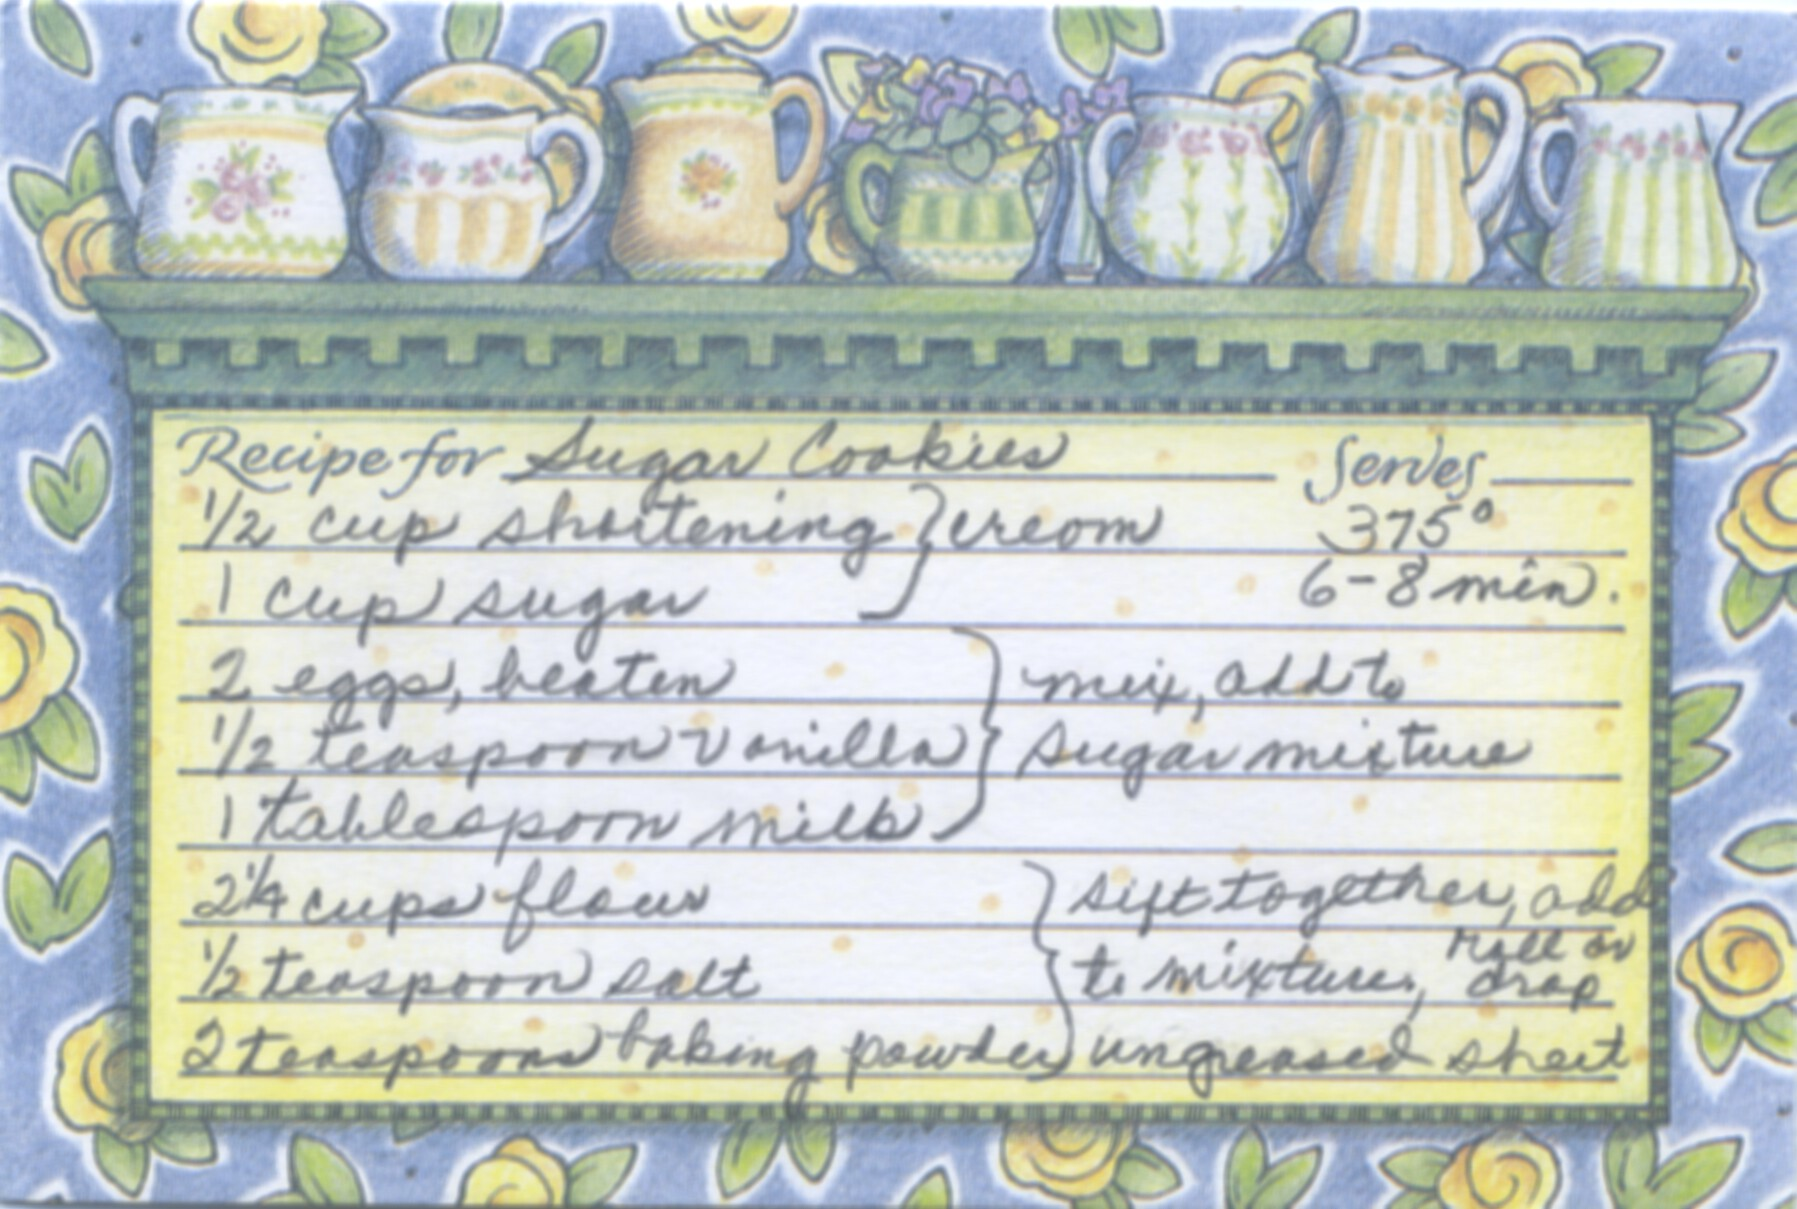 This is my sugar cookie recipe. In the late 1950s I did baby sitting for our preacher's family who were good friends of my parents. Occasionally homemade sugar cookies were left as a treat for the children and me. My original copy of this recipe went into my pink recipe box in the late 1950s.